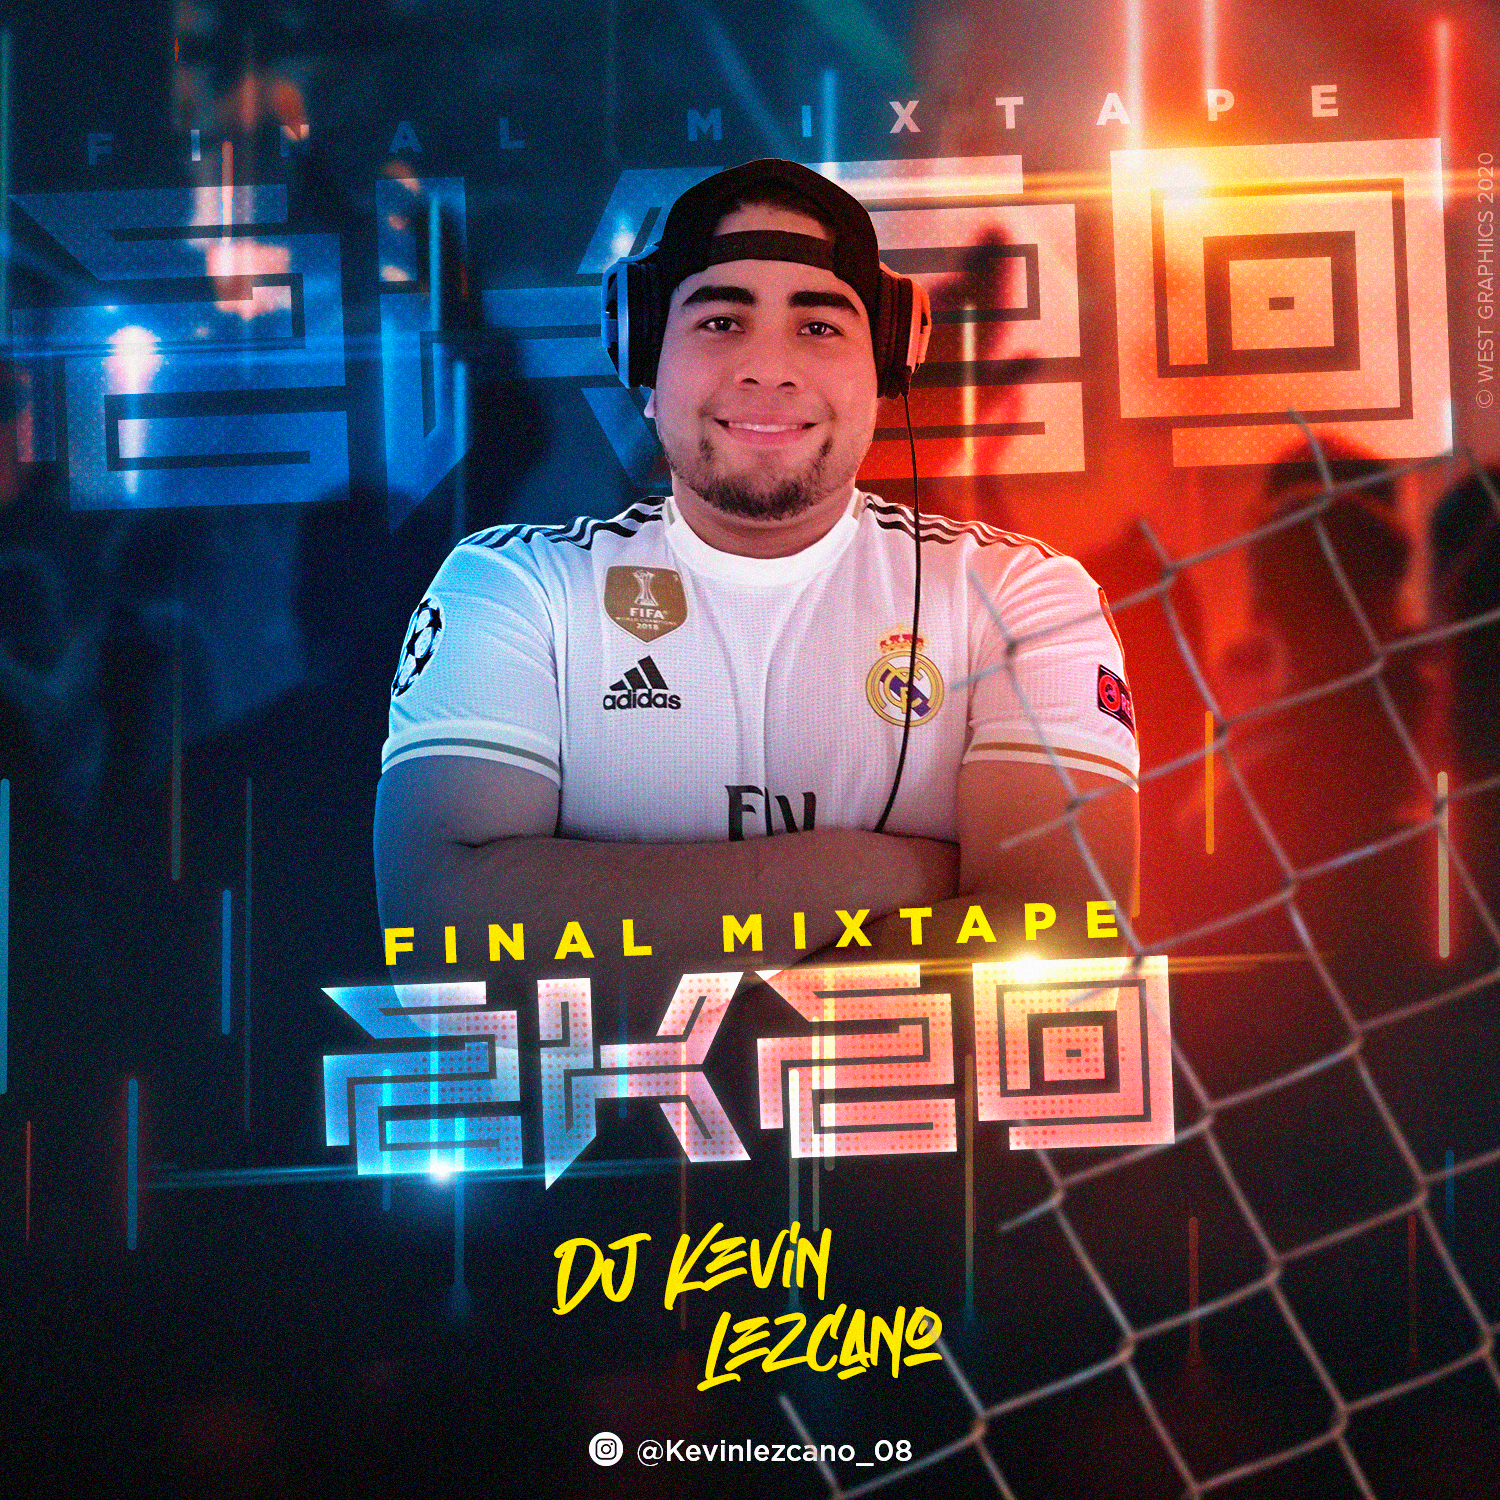 Dj Kevin Lezcano - Final Mixtape 2K20